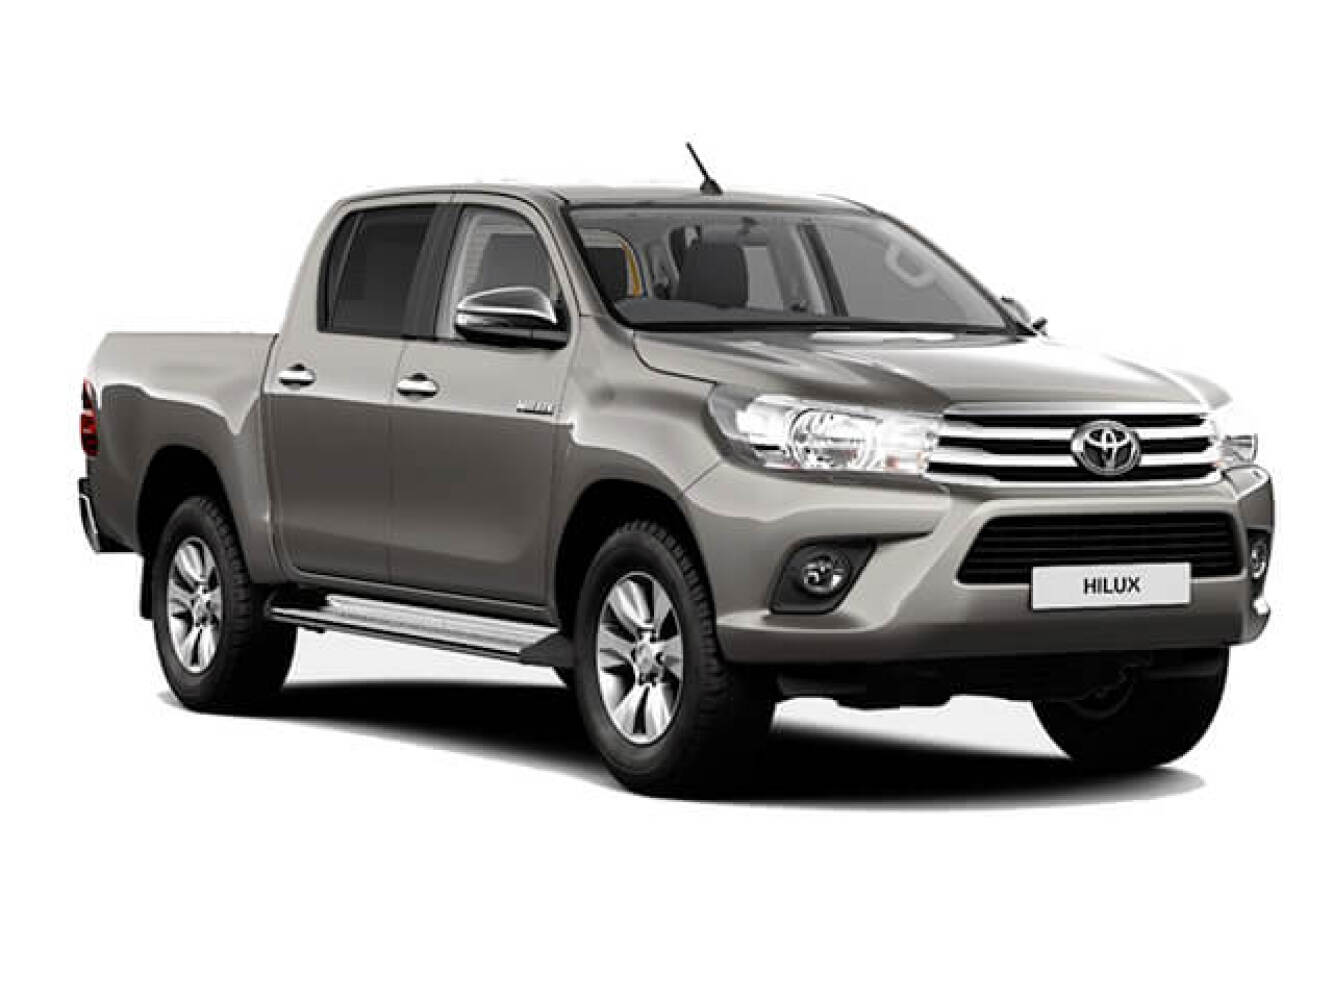 new toyota hilux diesel icon d cab pick up 2 4 d 4d auto for sale bristol street. Black Bedroom Furniture Sets. Home Design Ideas